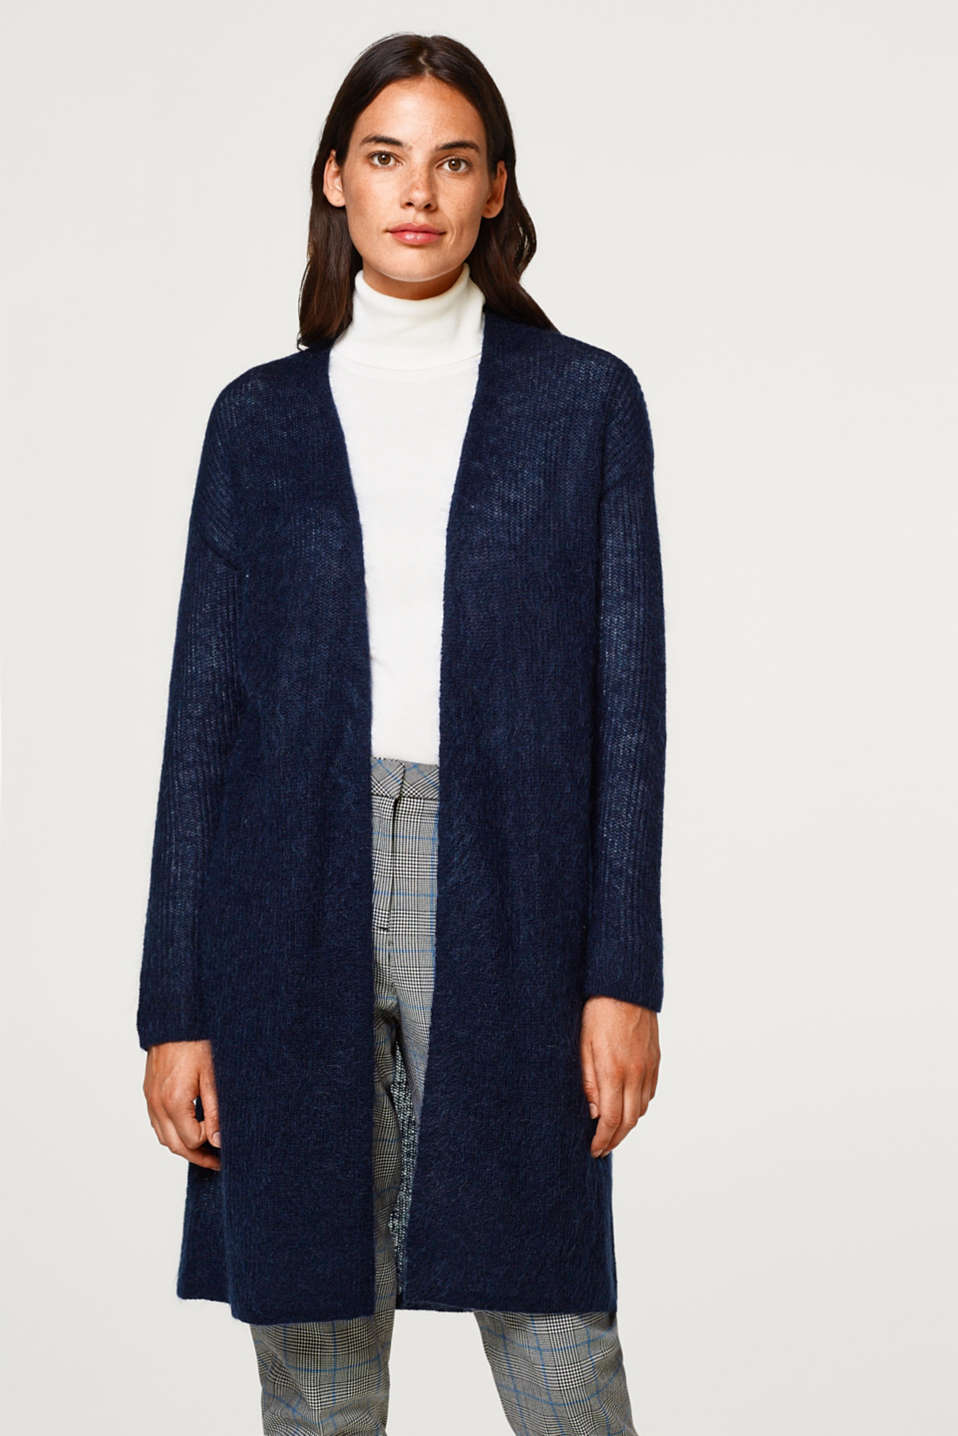 Esprit - With wool and mohair: long, open-fronted cardigan